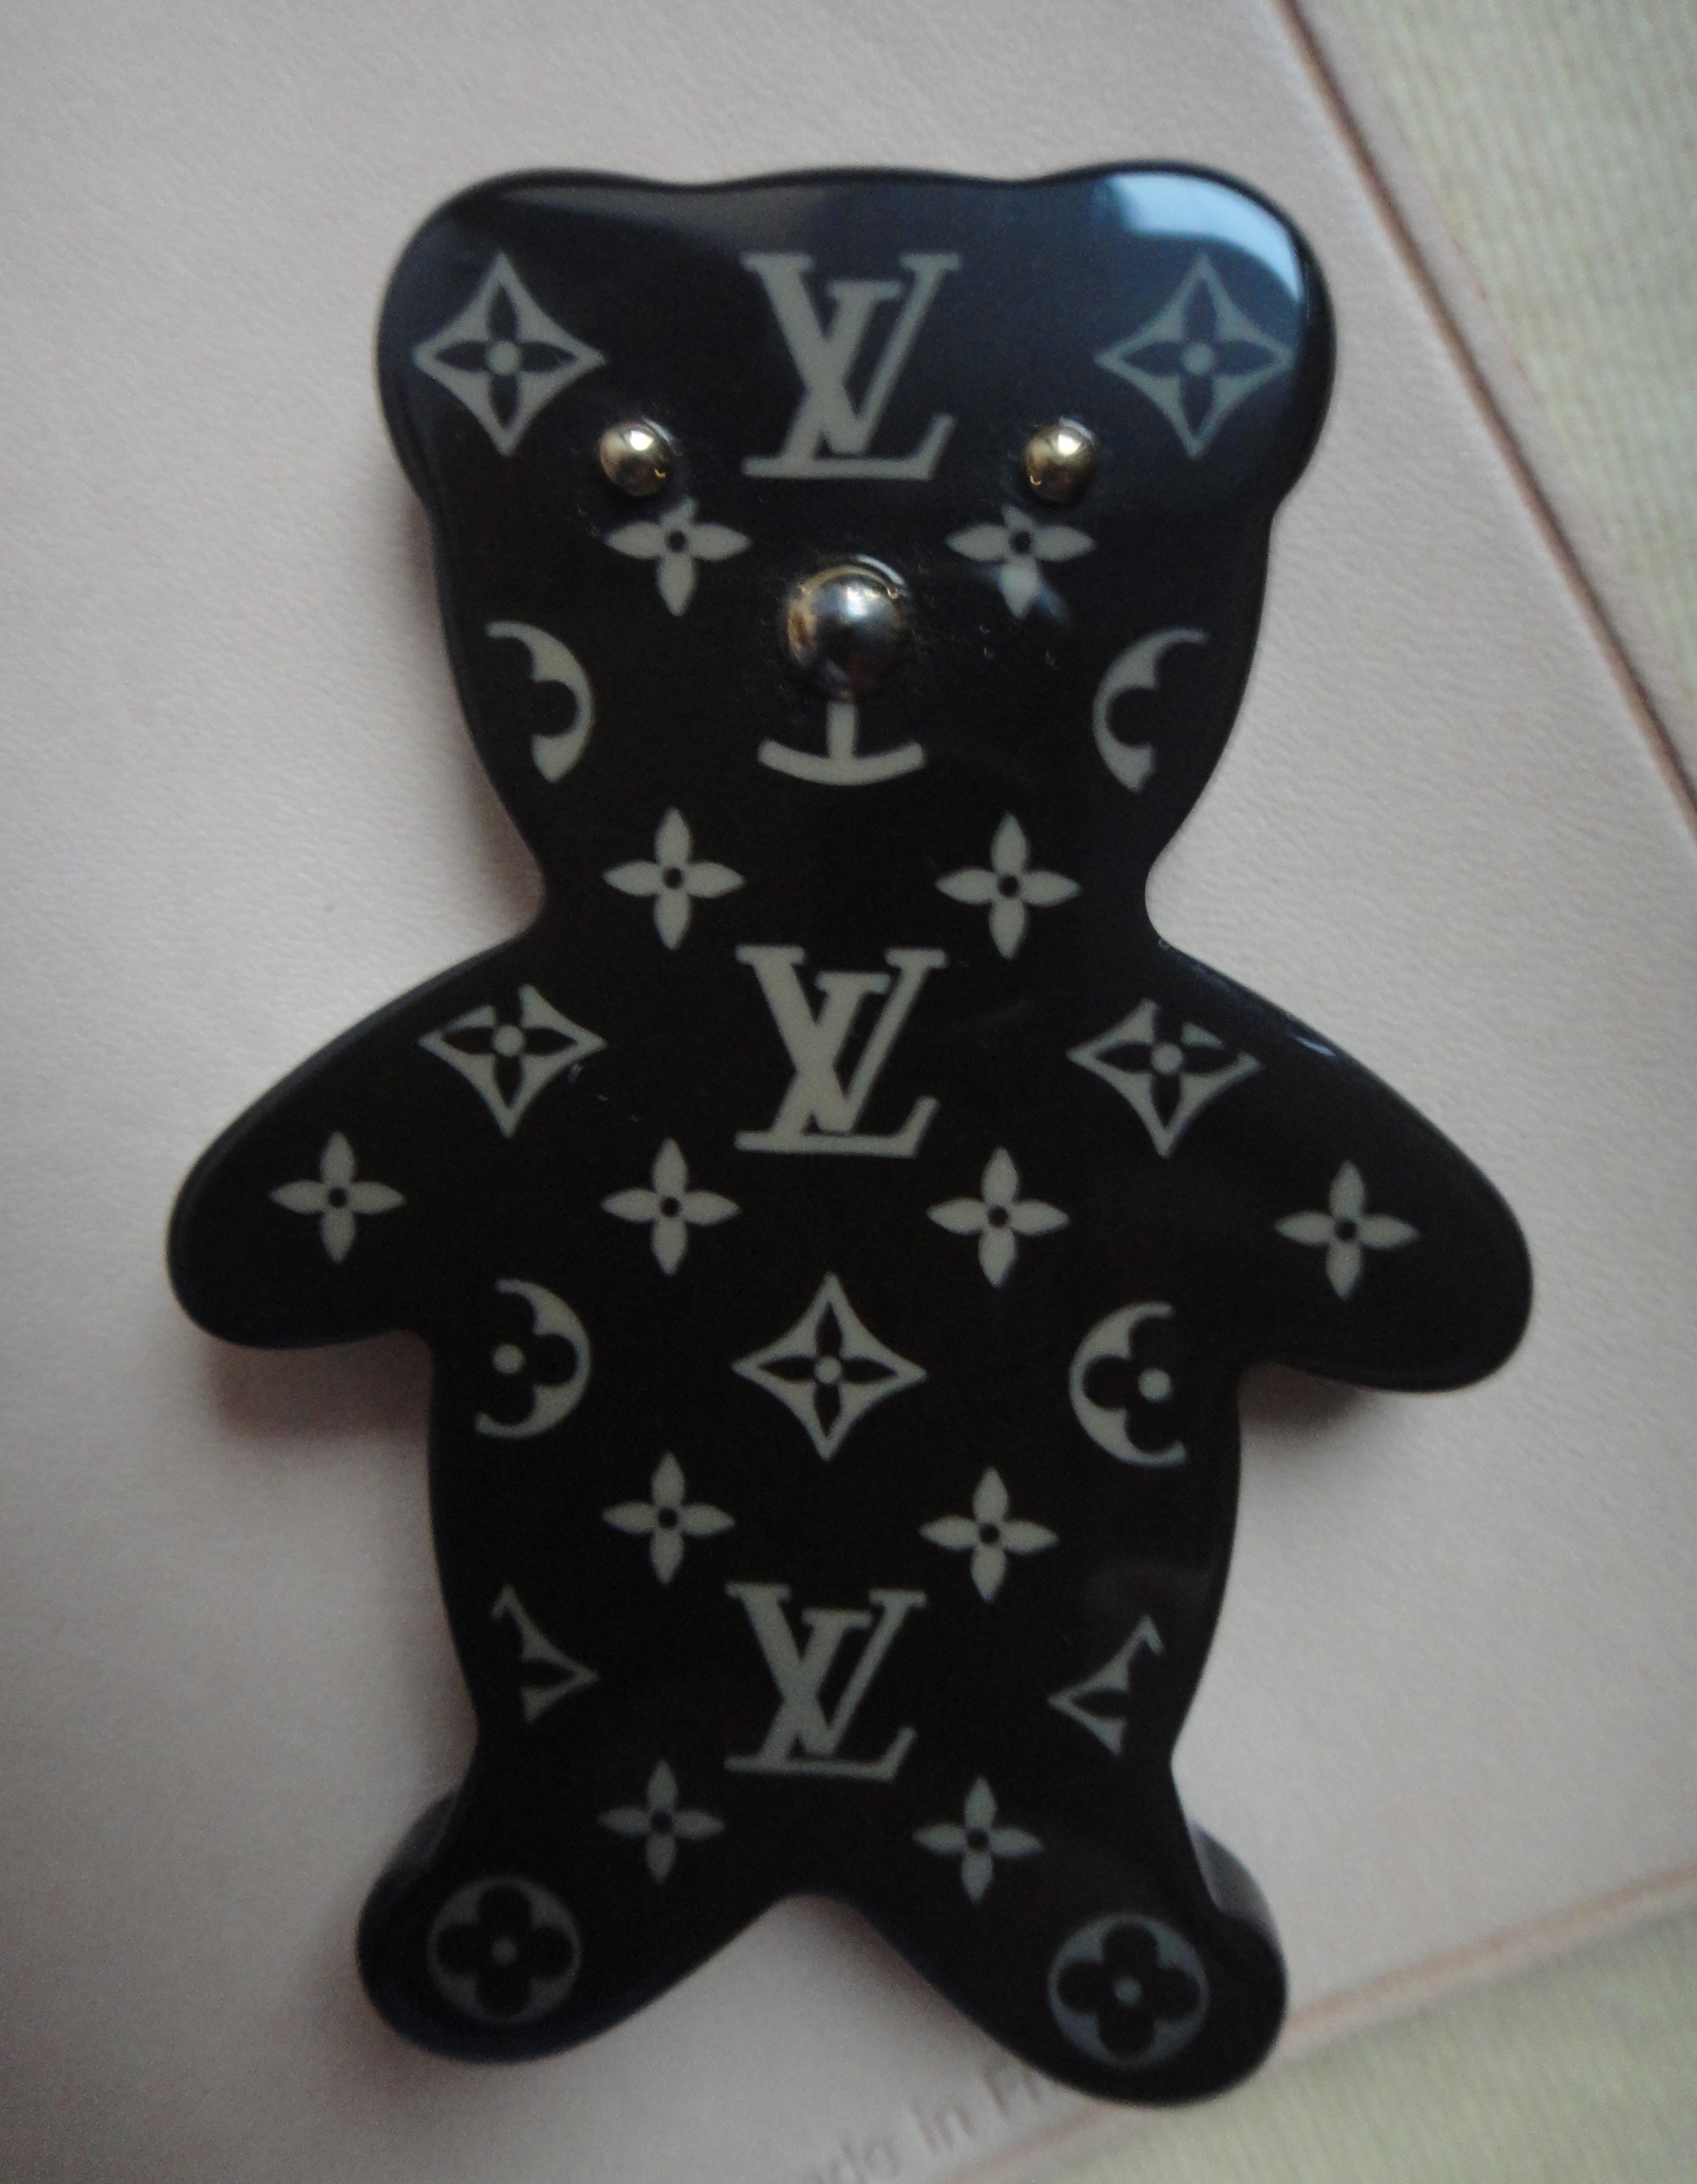 Louis Vuitton Monogram pin